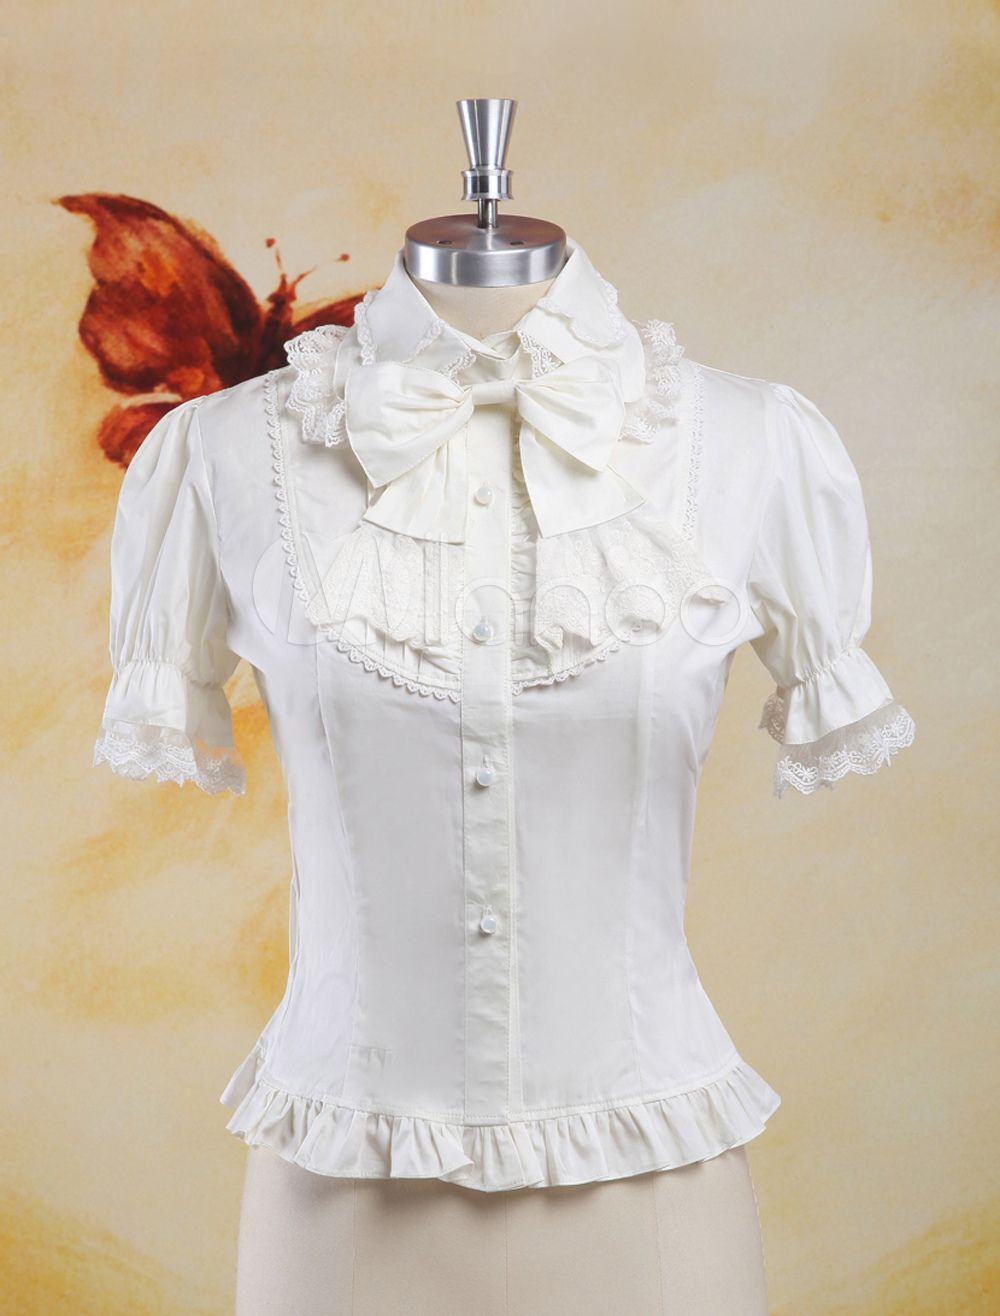 51e6546a3bb Sweet White Cotton Lolita Blouse Short Sleeves Lace Trim Bows ...